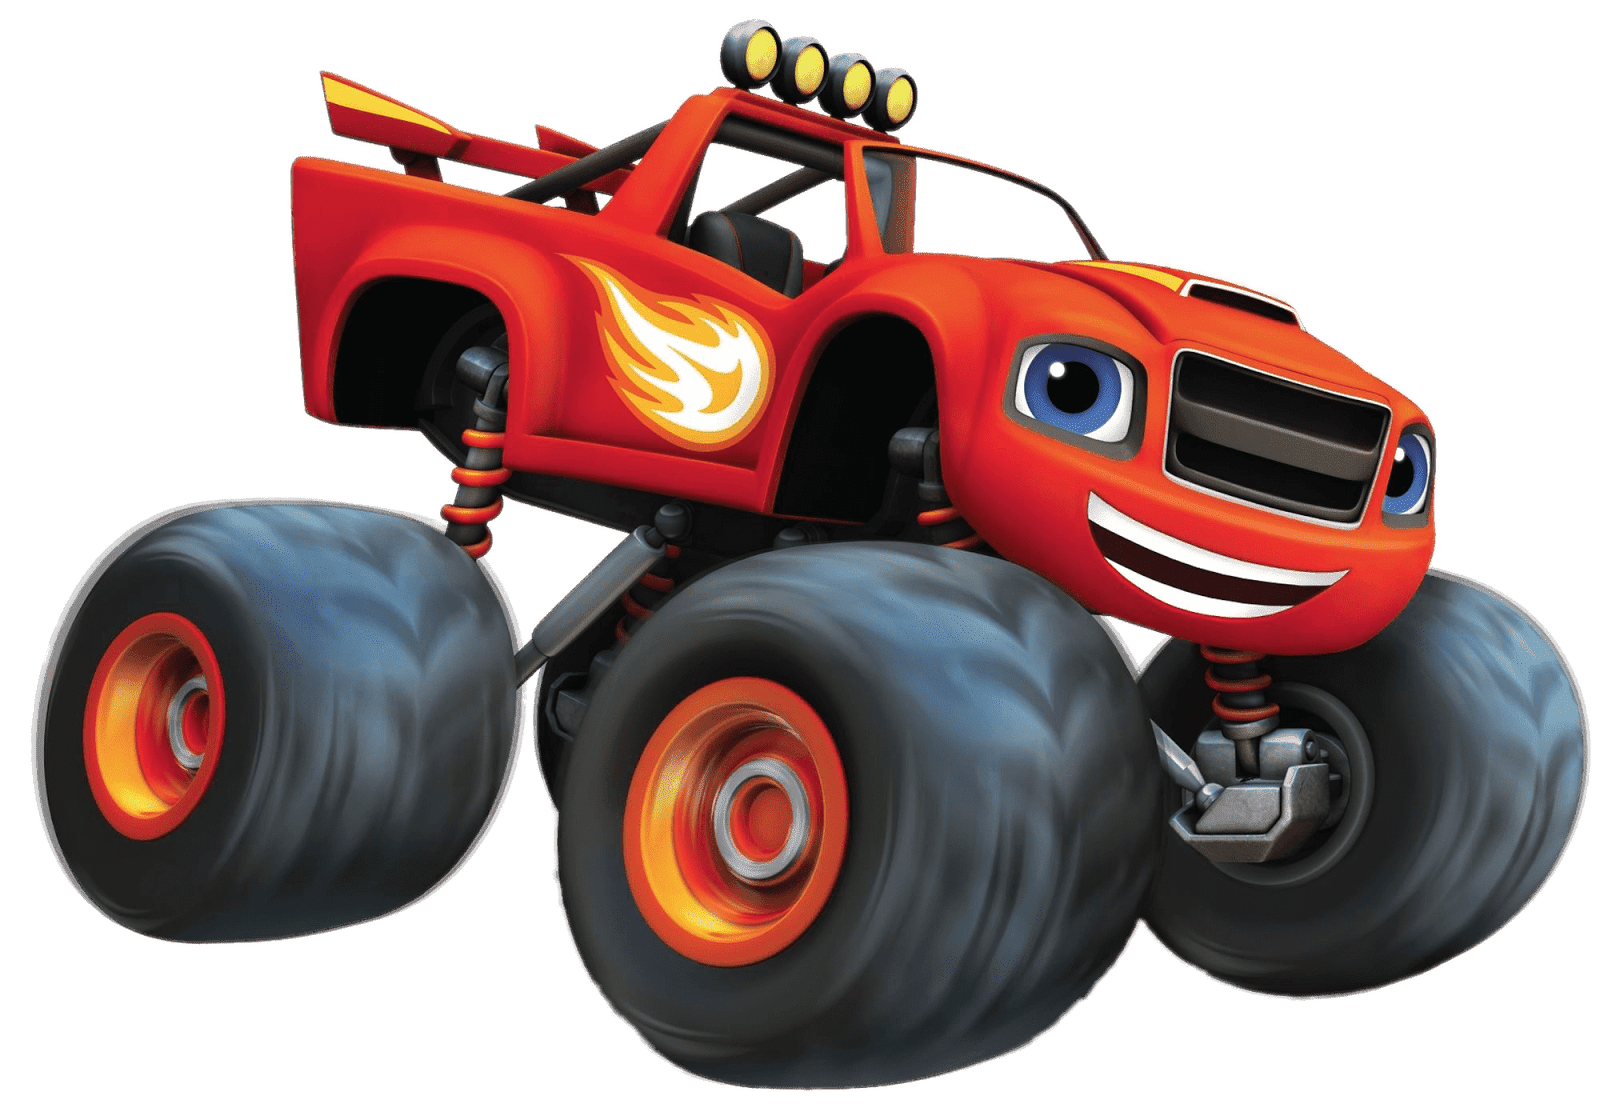 This is a graphic of Resource Blaze and the Monster Machines Images